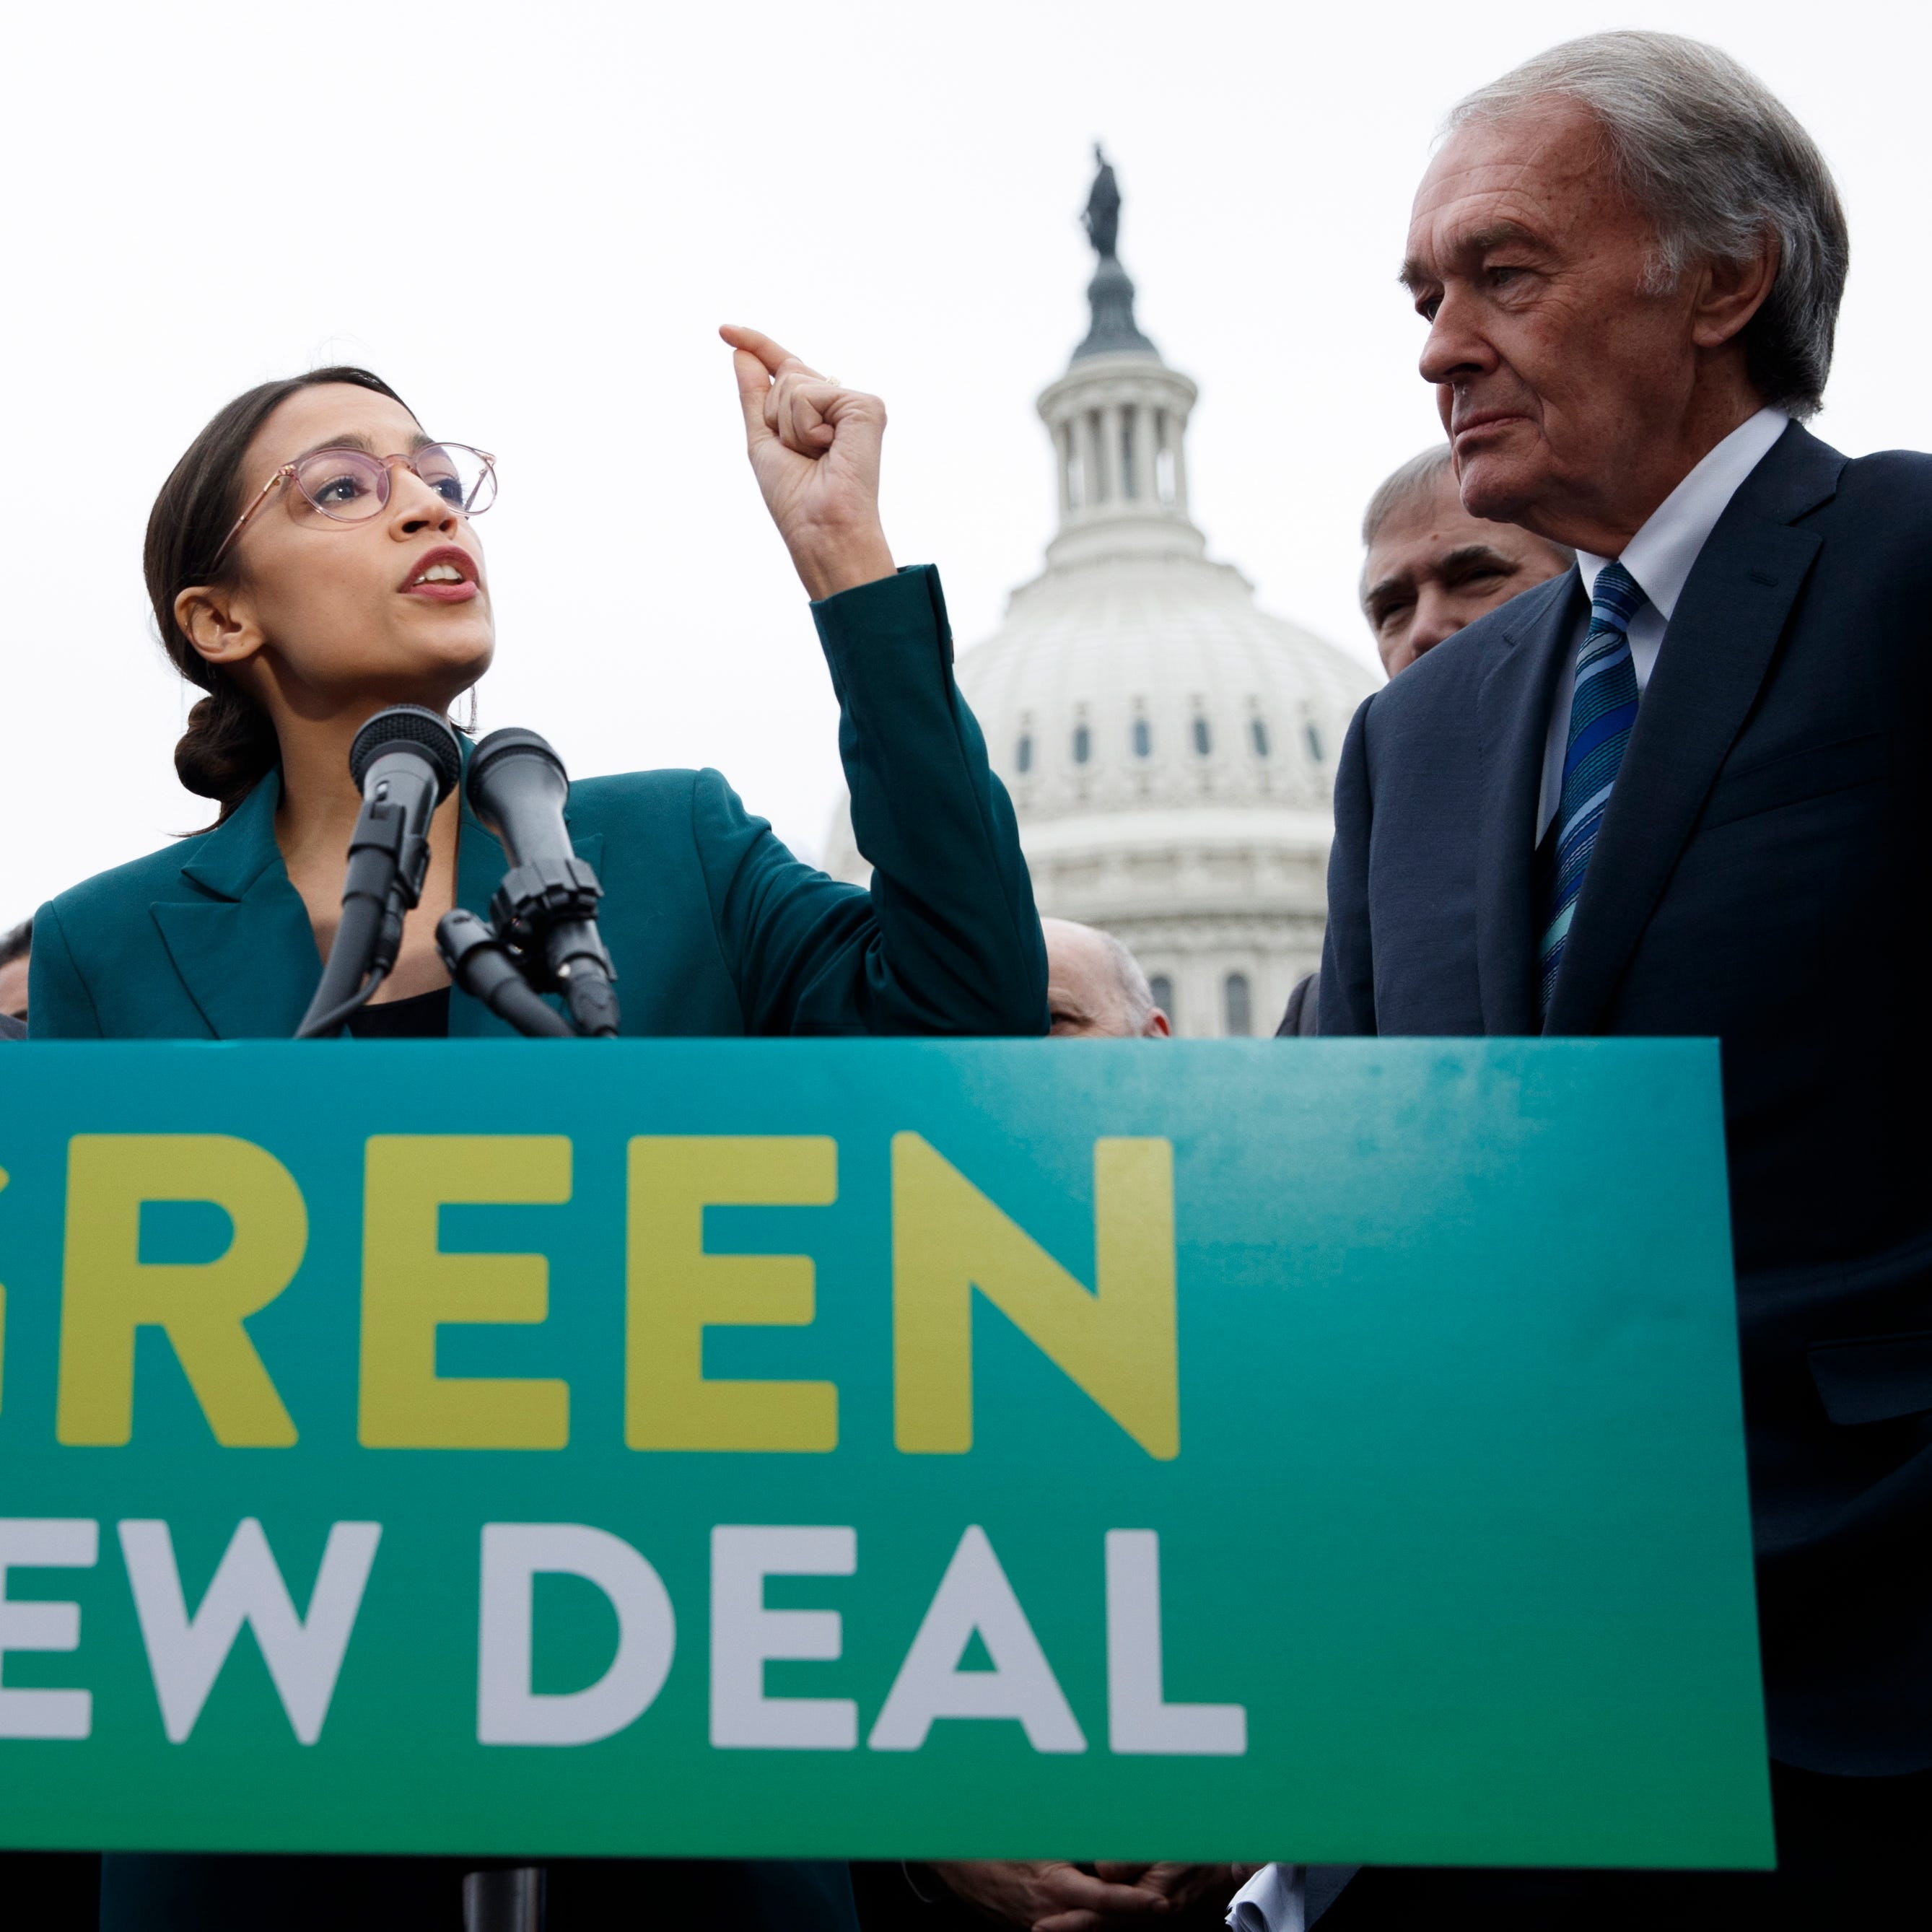 Opinion: Green New Deal a starting point for addressing climate change